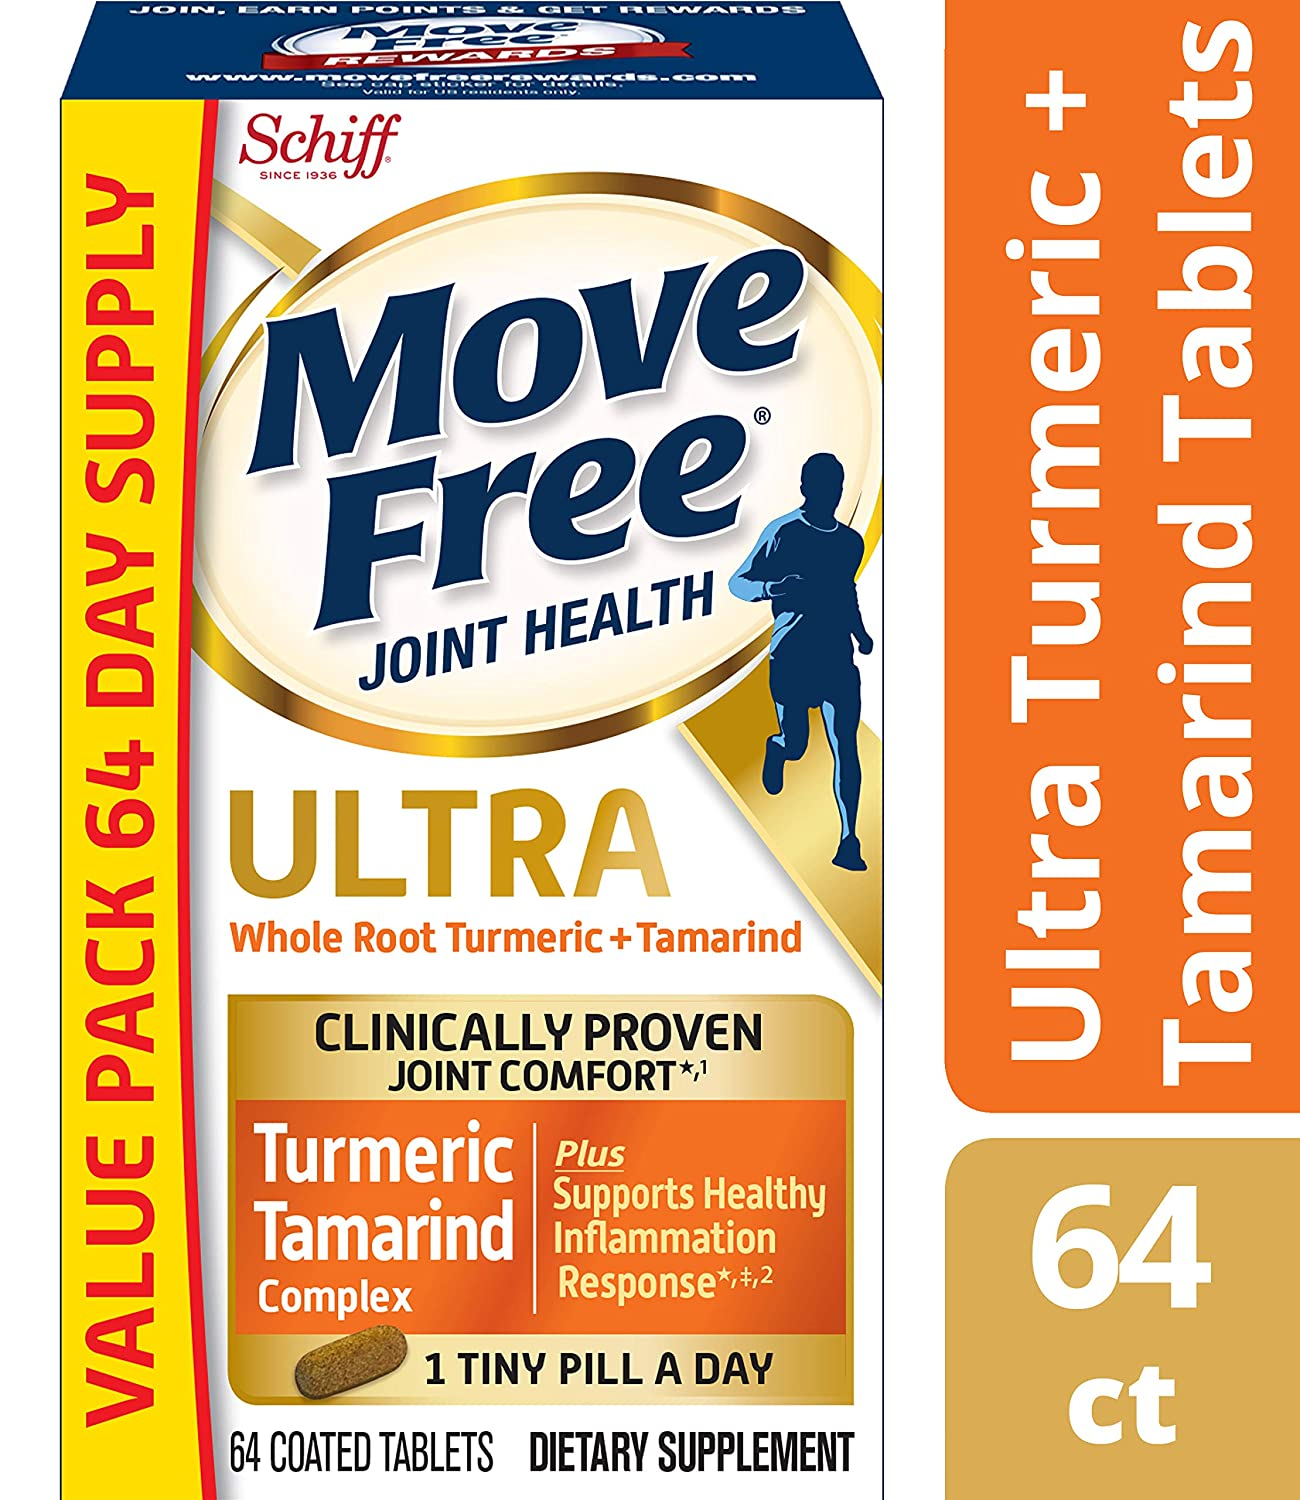 Turmeric Tamarind Ultra Joint Health Supplement, Move Free 64 count , Clinically Proven Joint Comfort In 1 Tiny Pill A Day